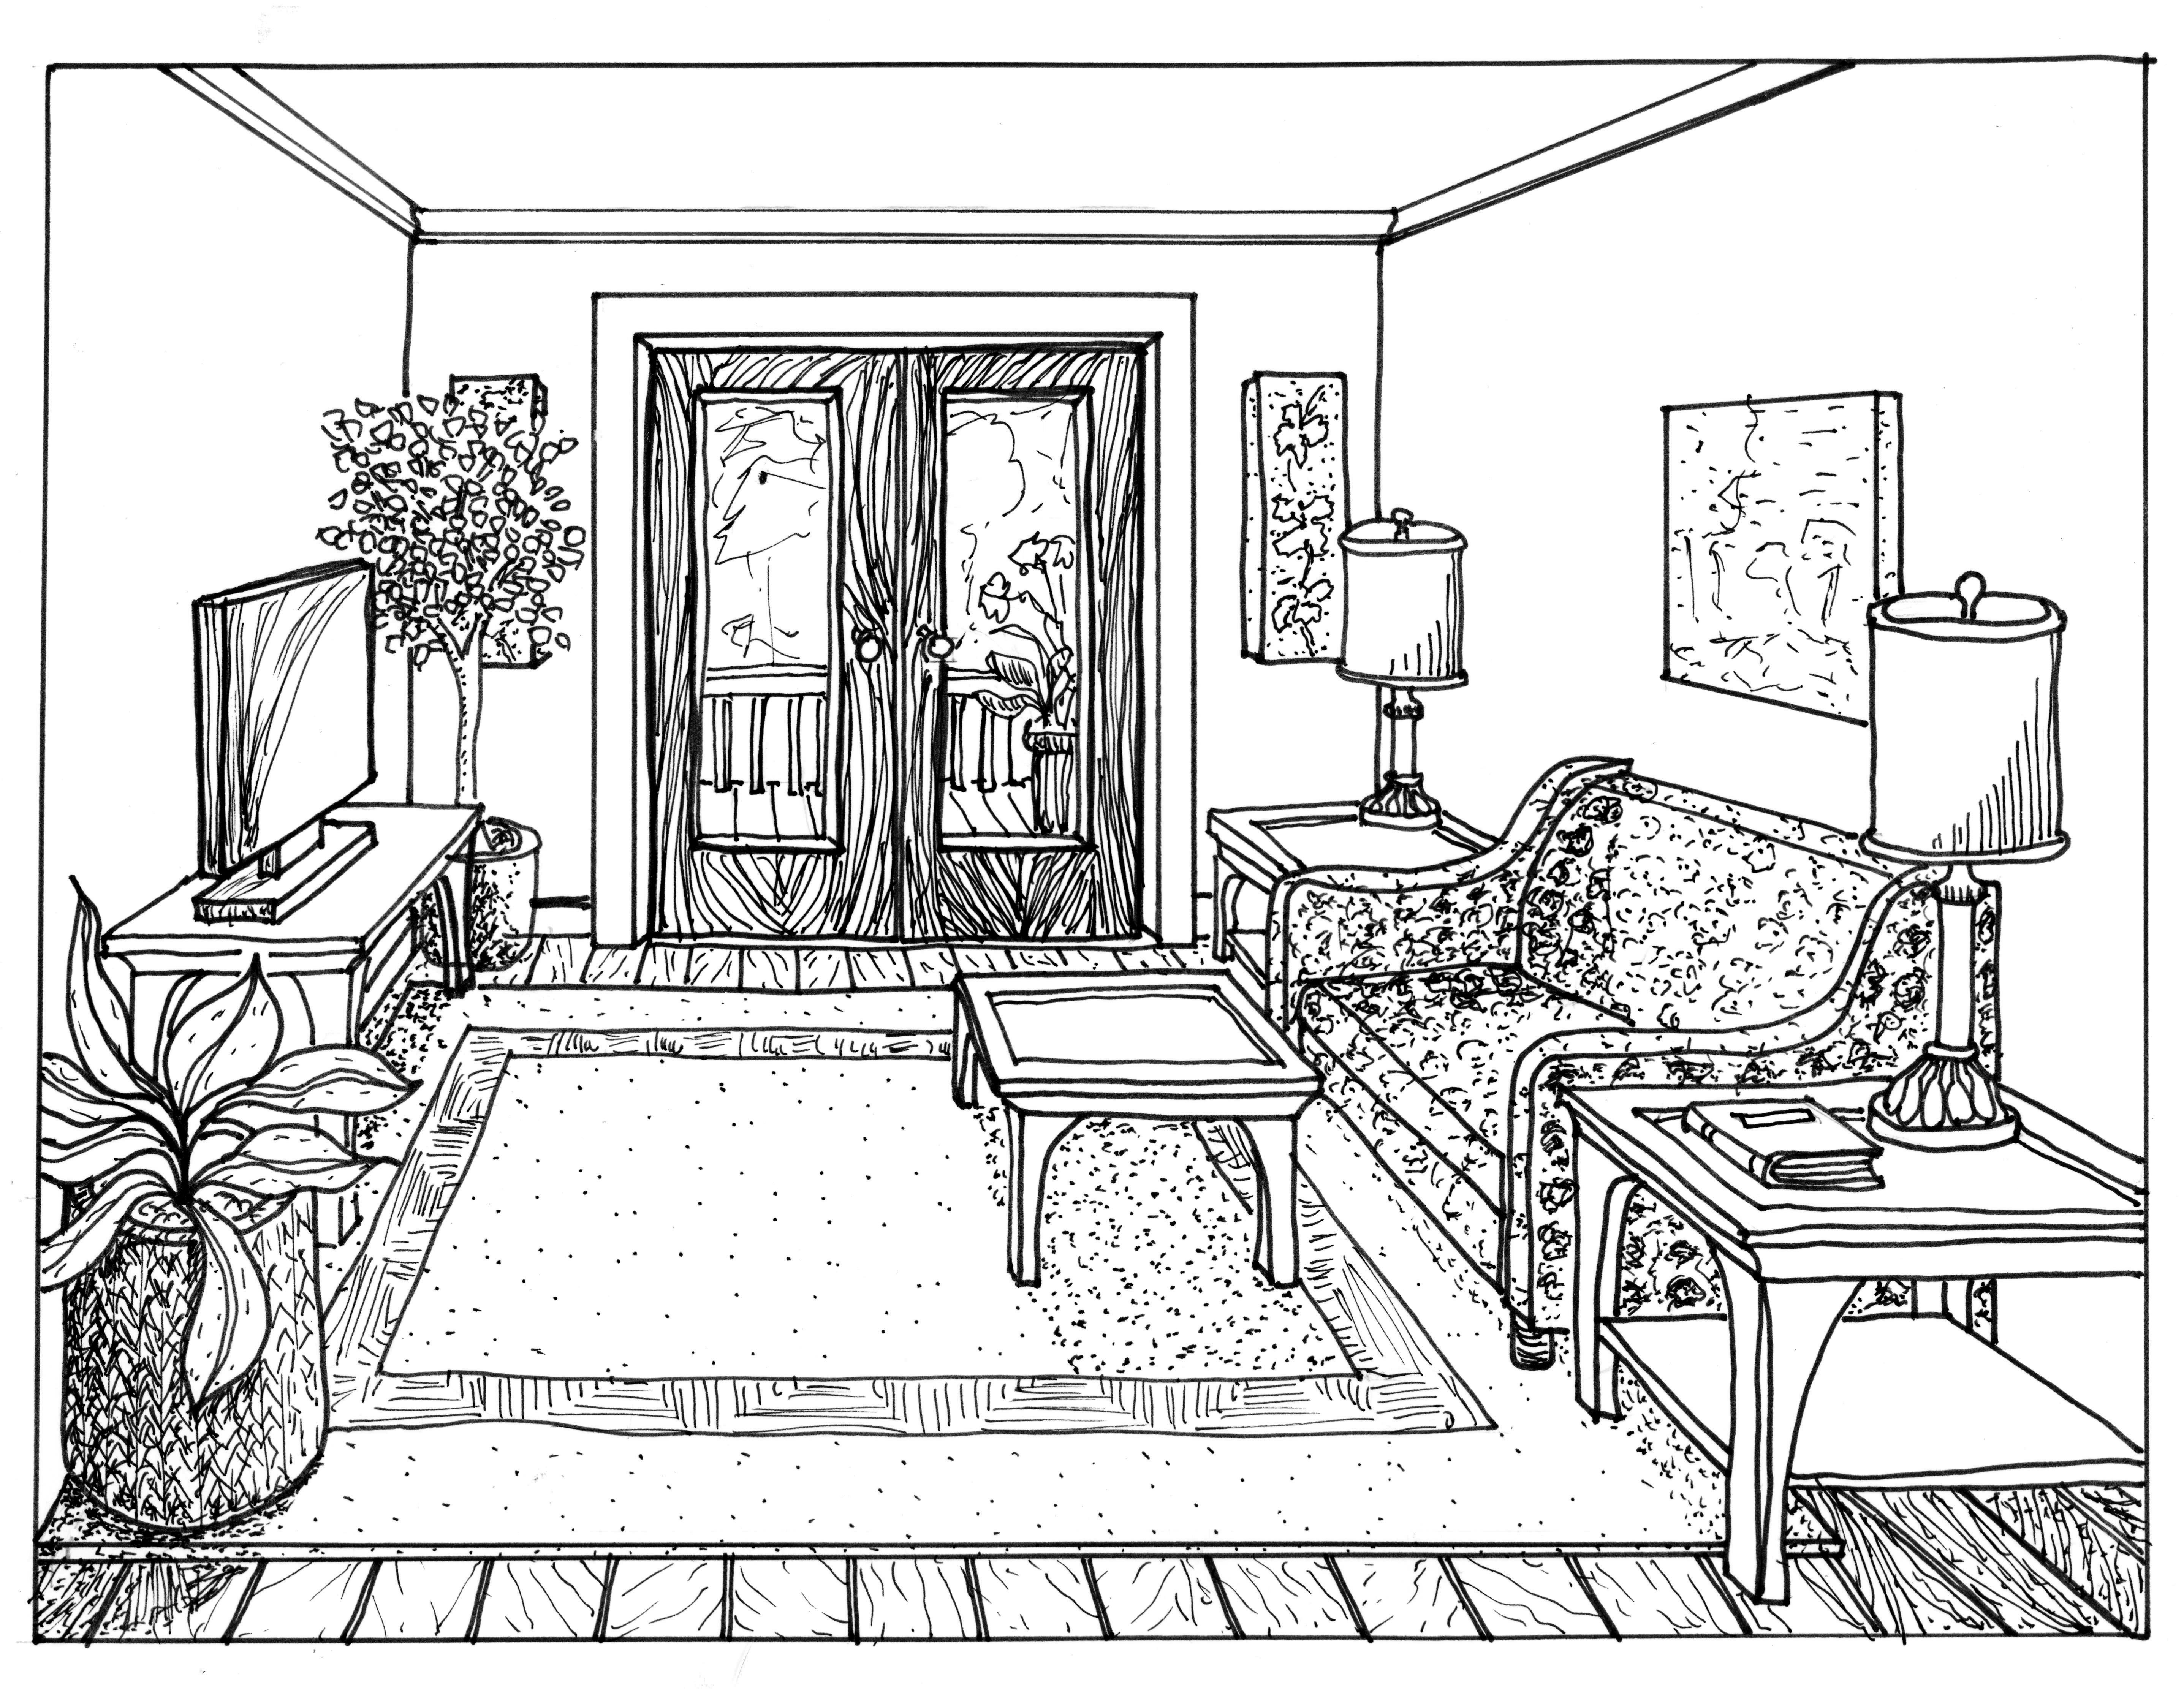 Drawn sofa architectural drawing Drawing A One Interior 1